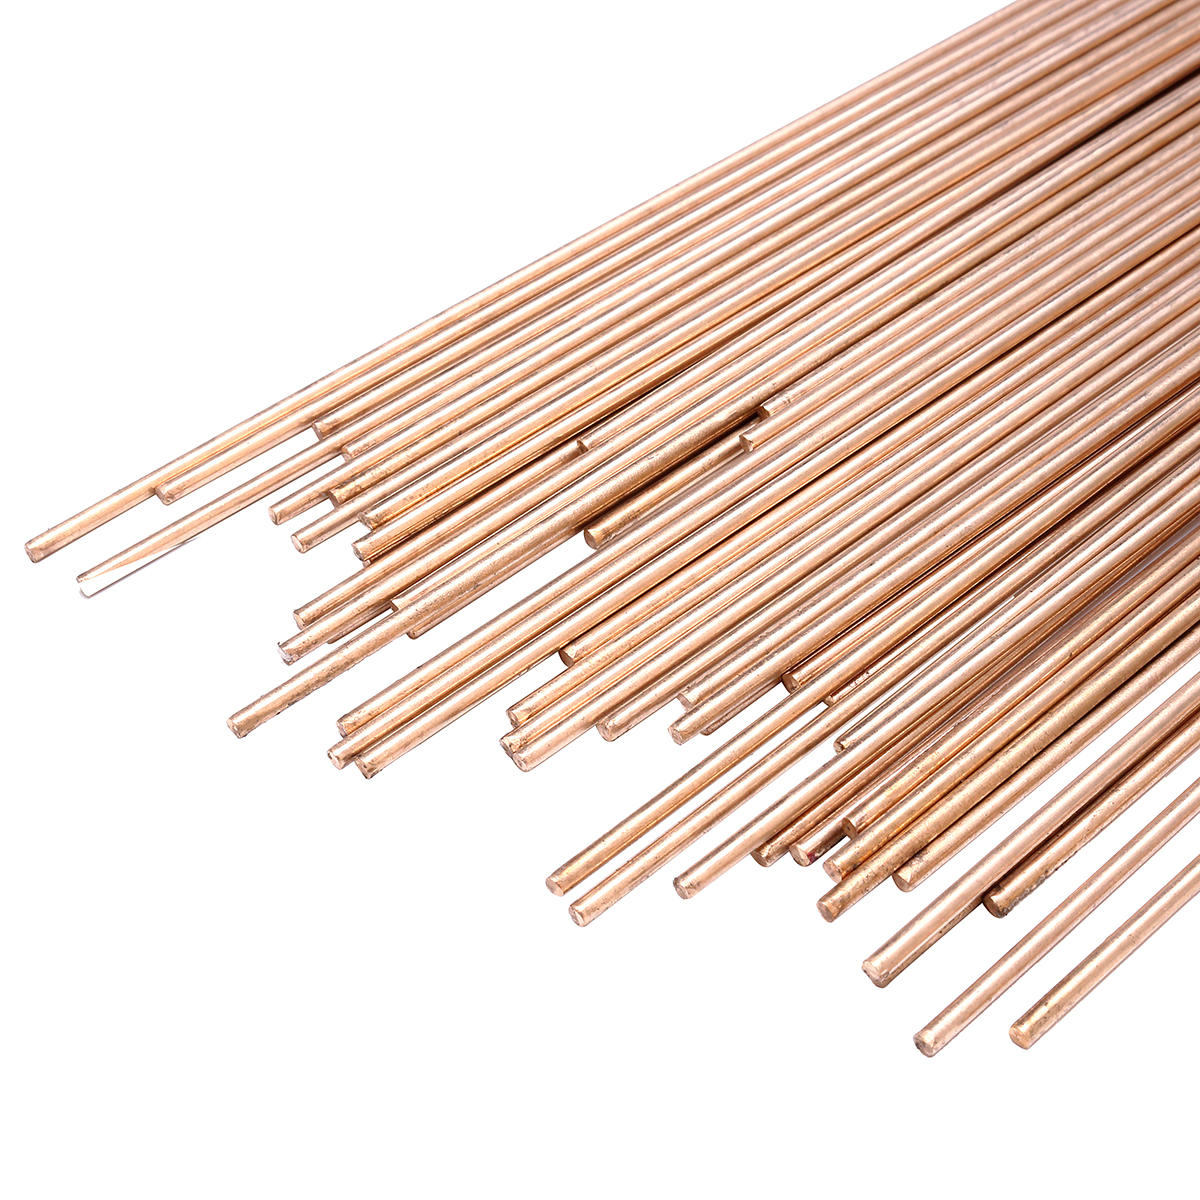 1000g 100cm 1.6mm Dia 50000 PSI  Silicon Bronze Brass Tig Brazing Welding Rods